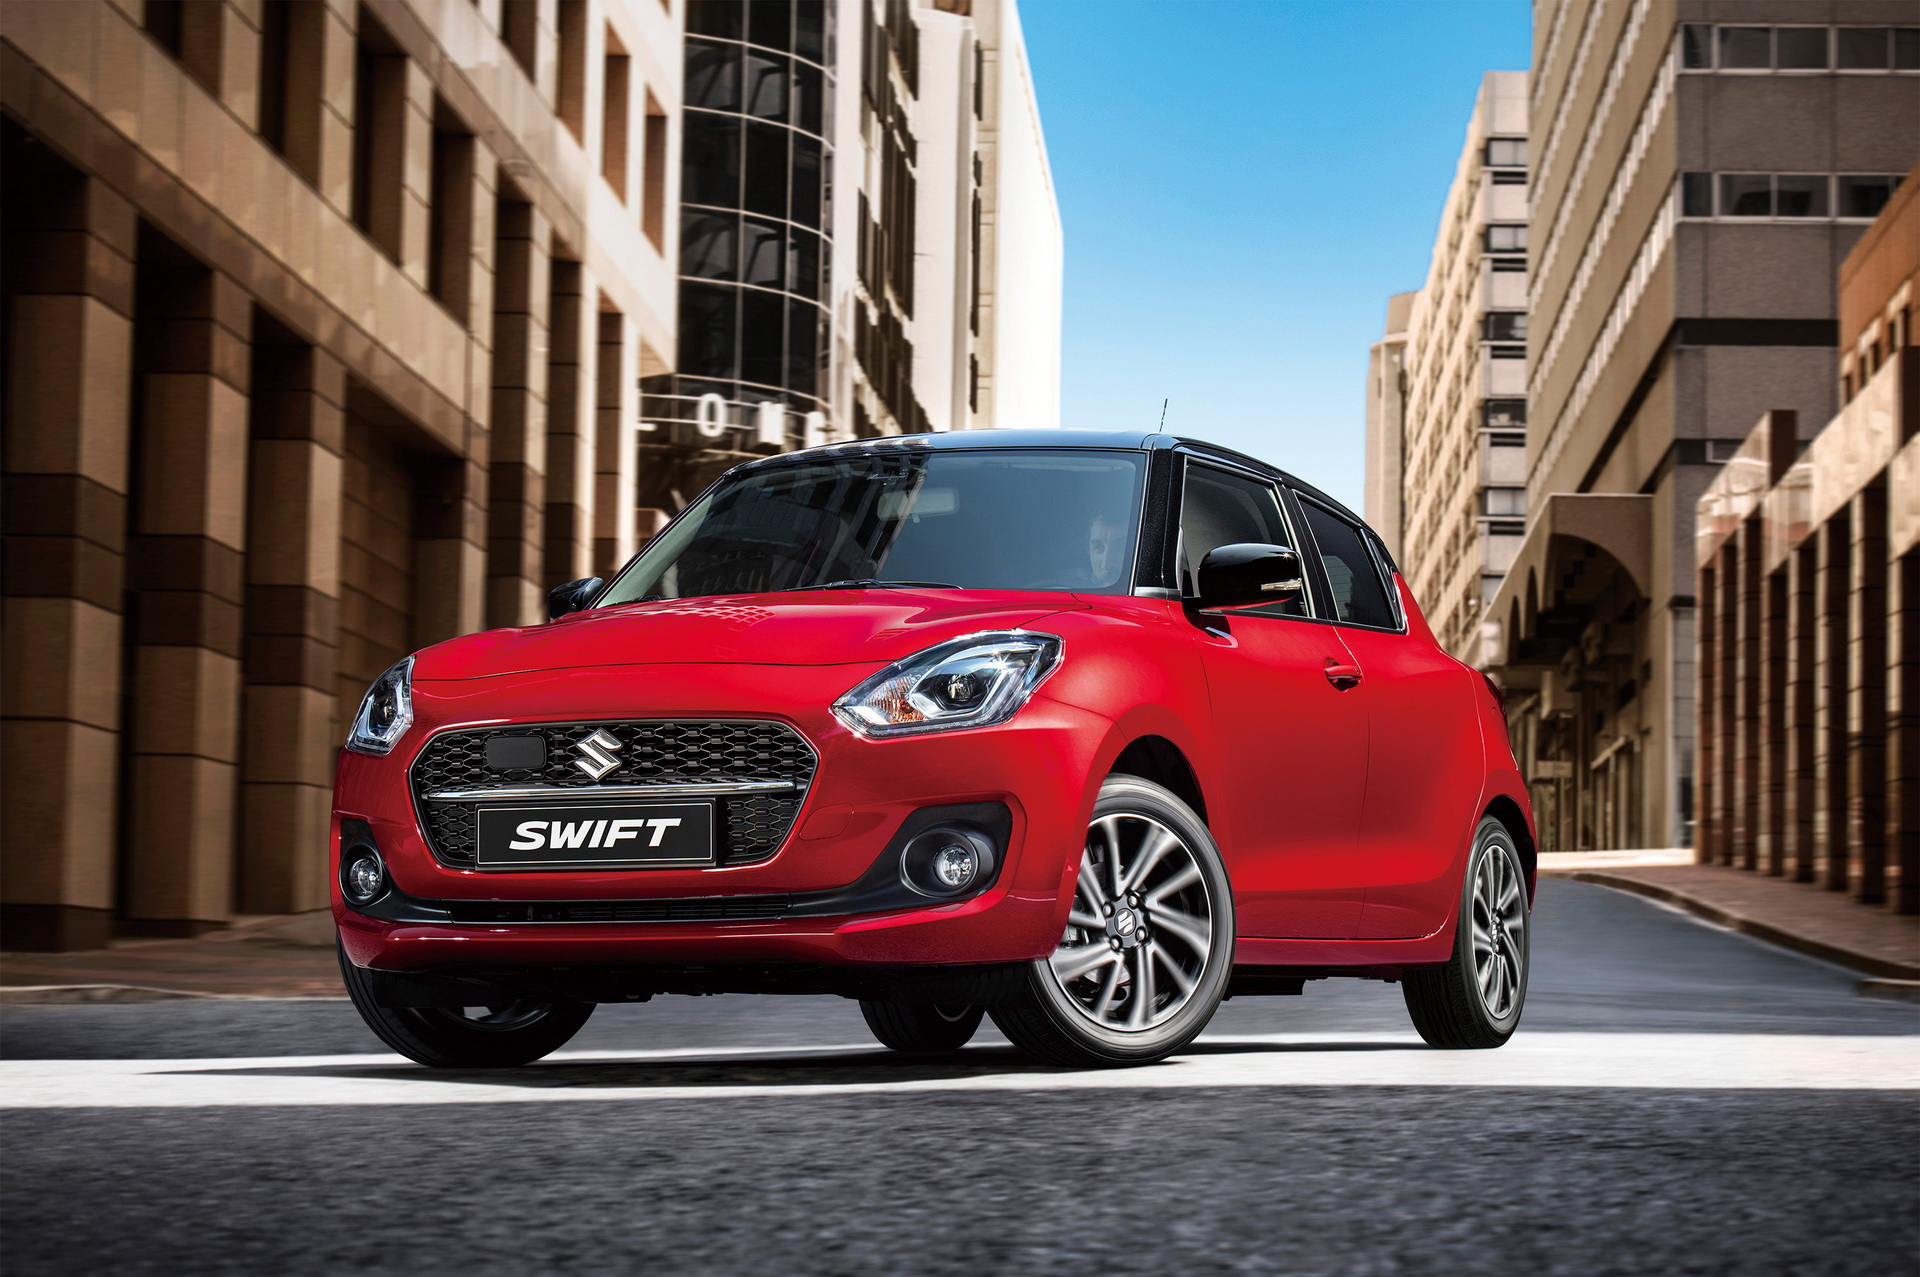 suzuki swift lifting